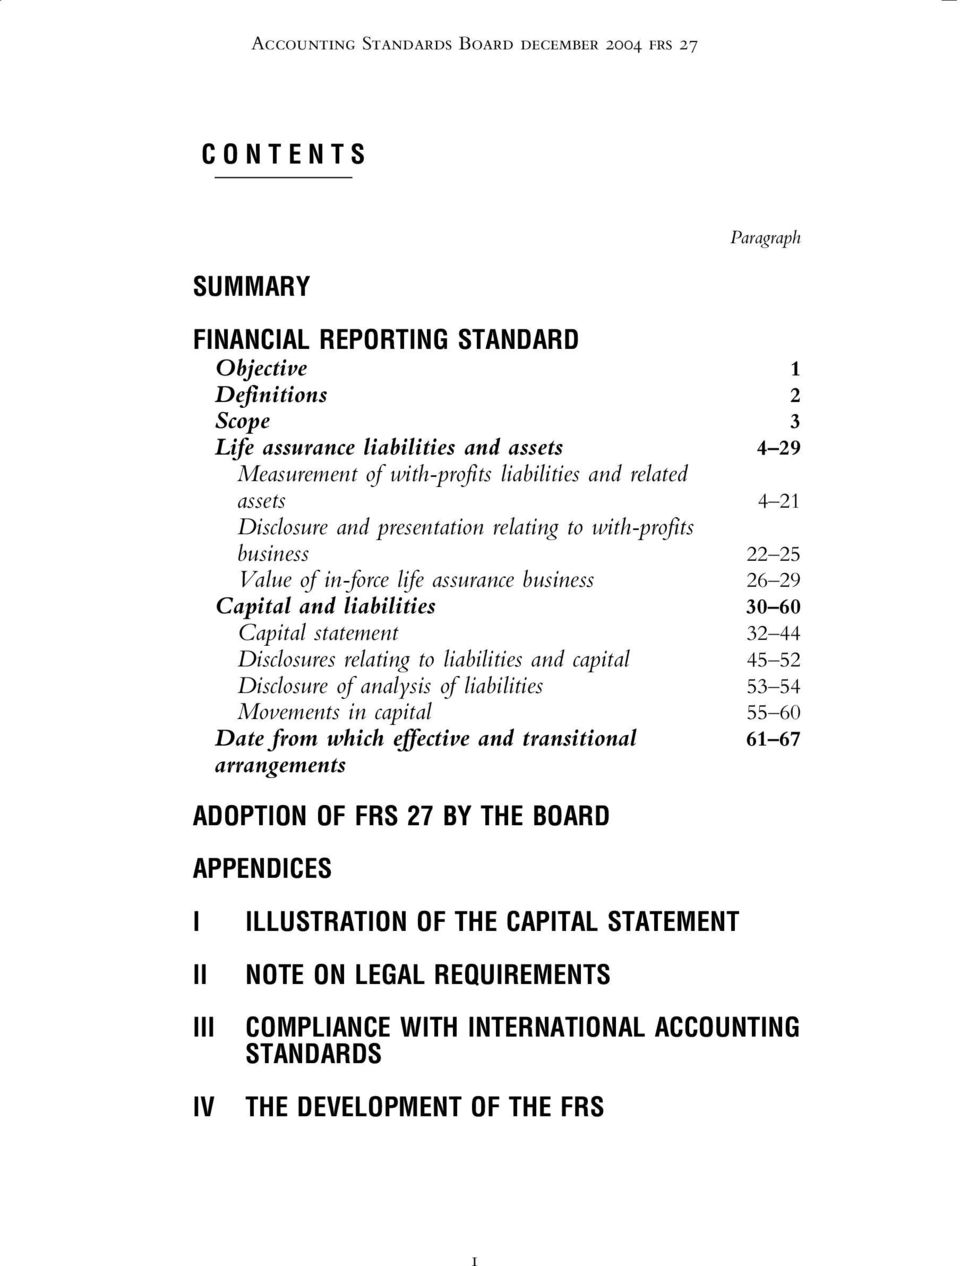 Capital statement 32 44 Disclosures relating to liabilities and capital 45 52 Disclosure of analysis of liabilities 53 54 Movements in capital 55 60 Date from which effective and transitional 61 67